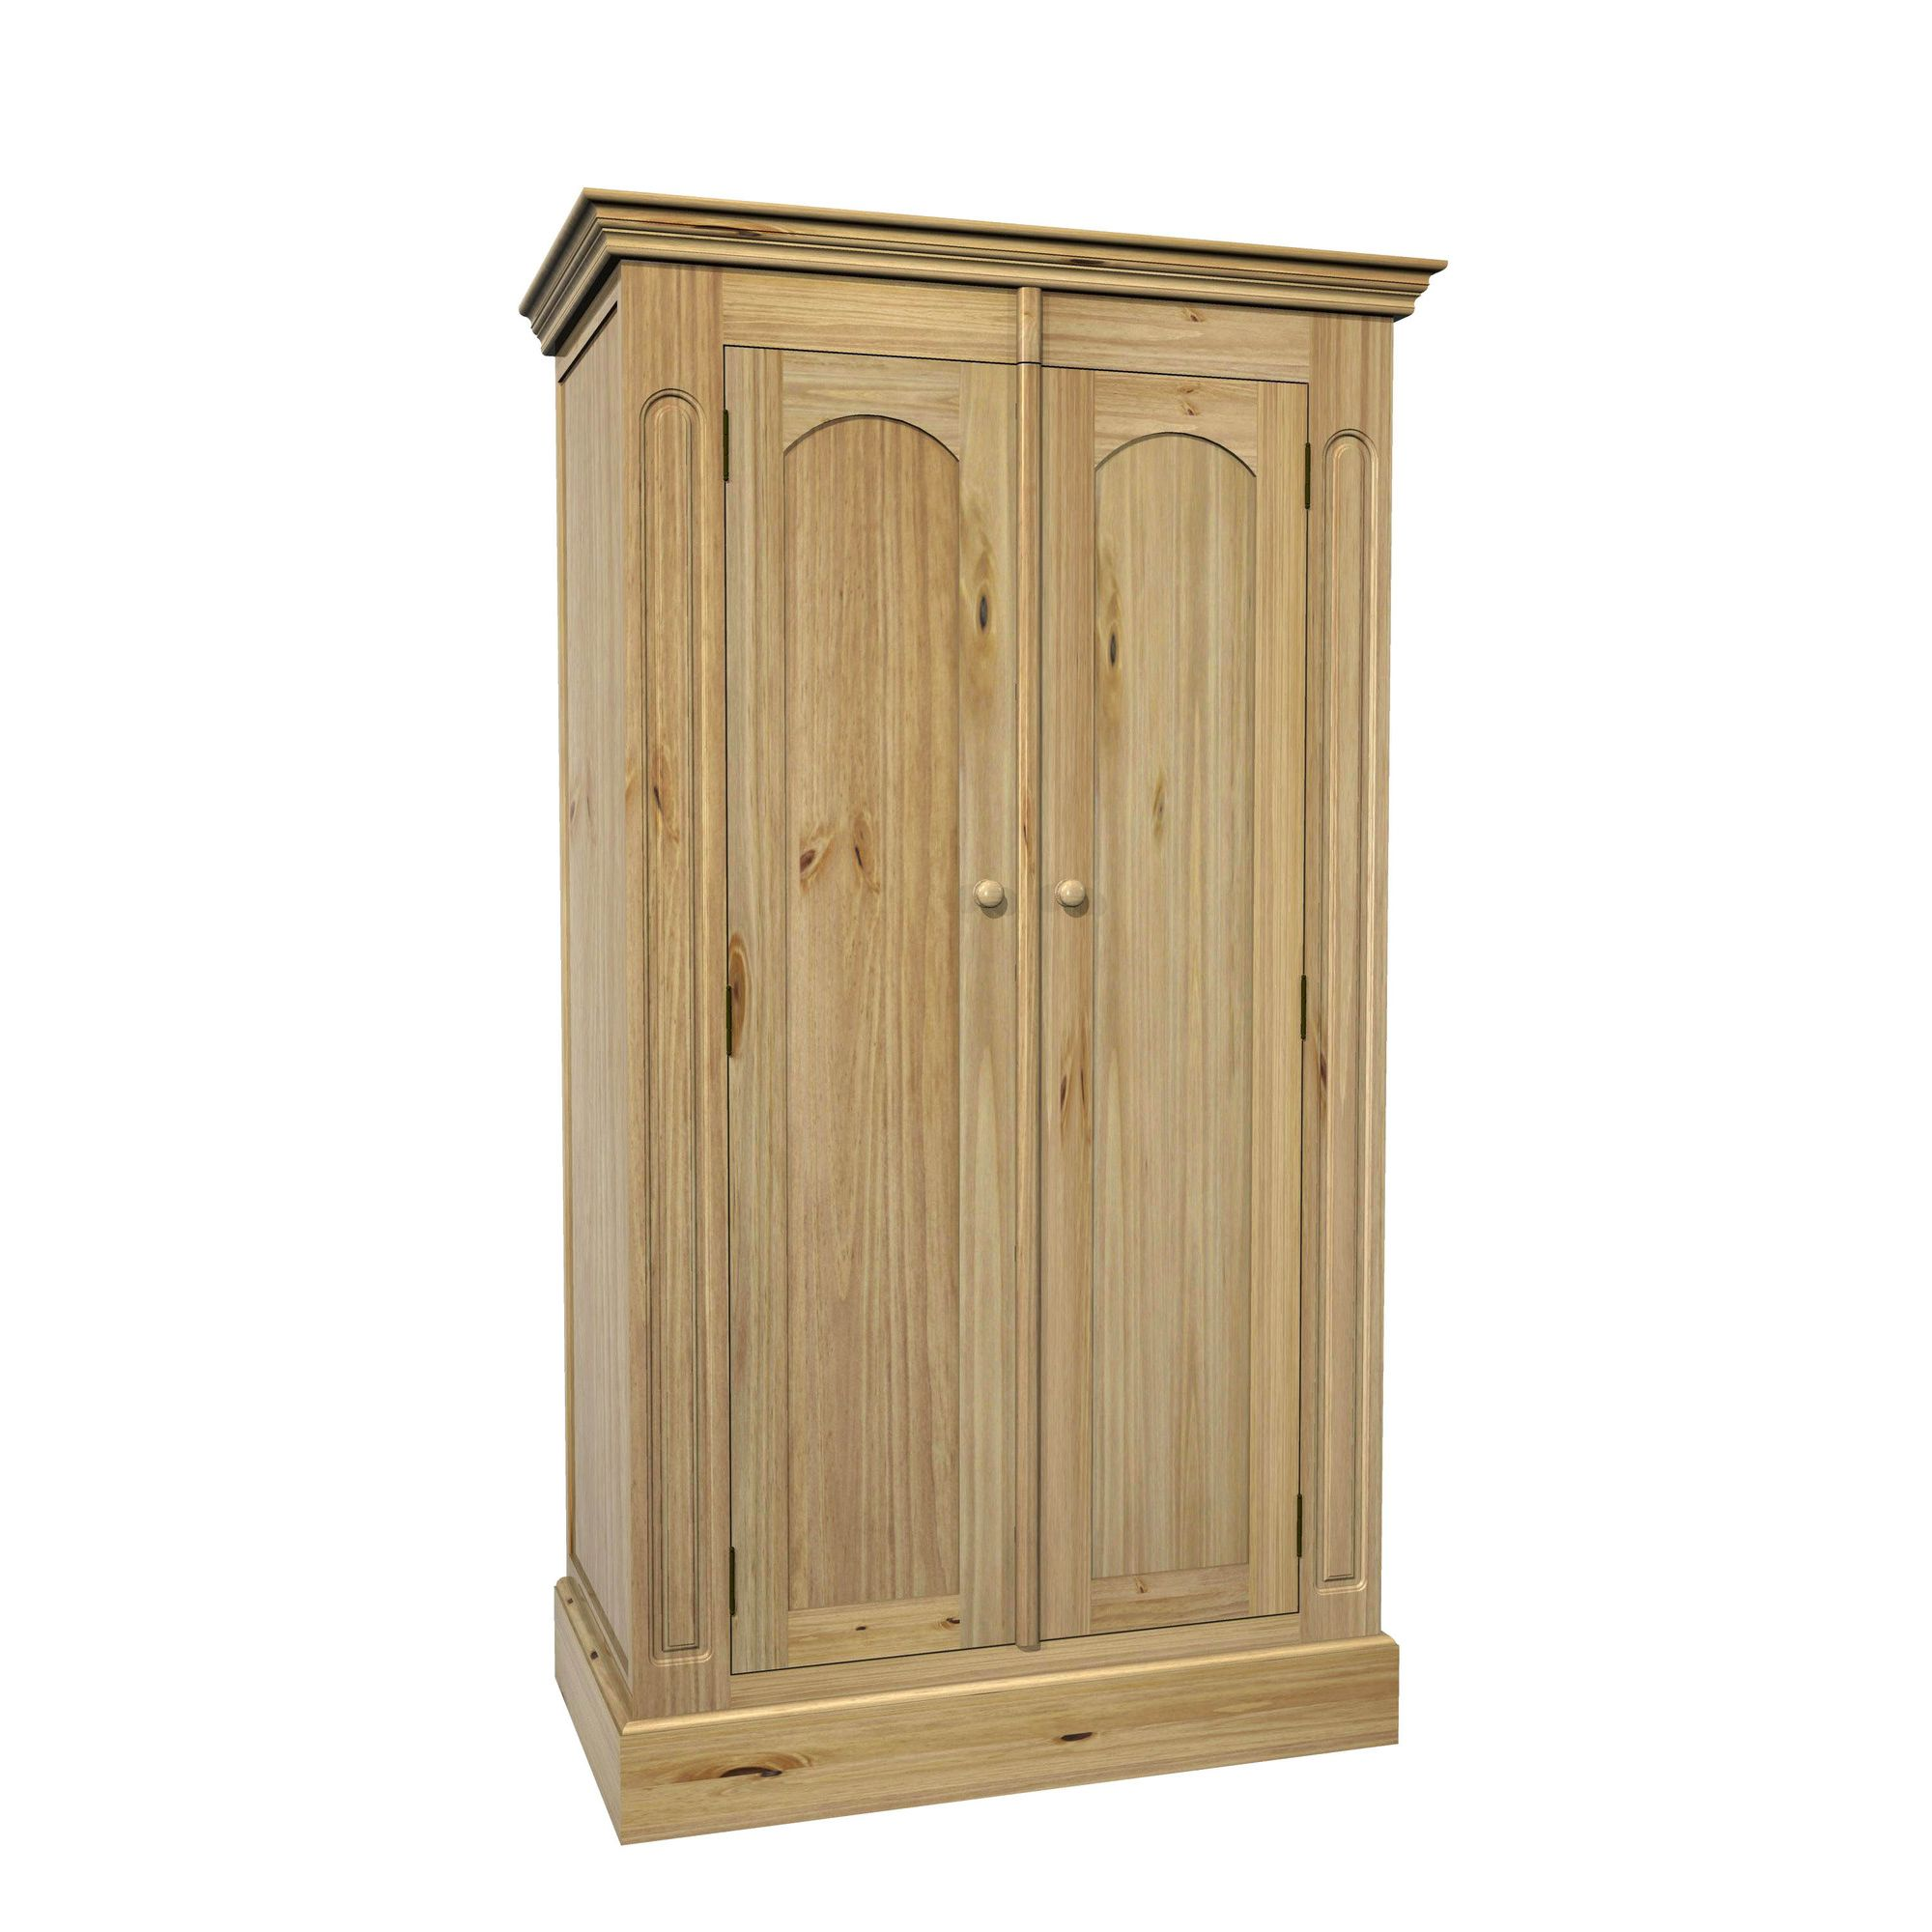 Kelburn Furniture Woodland Pine 2 Door Wardrobe at Tesco Direct